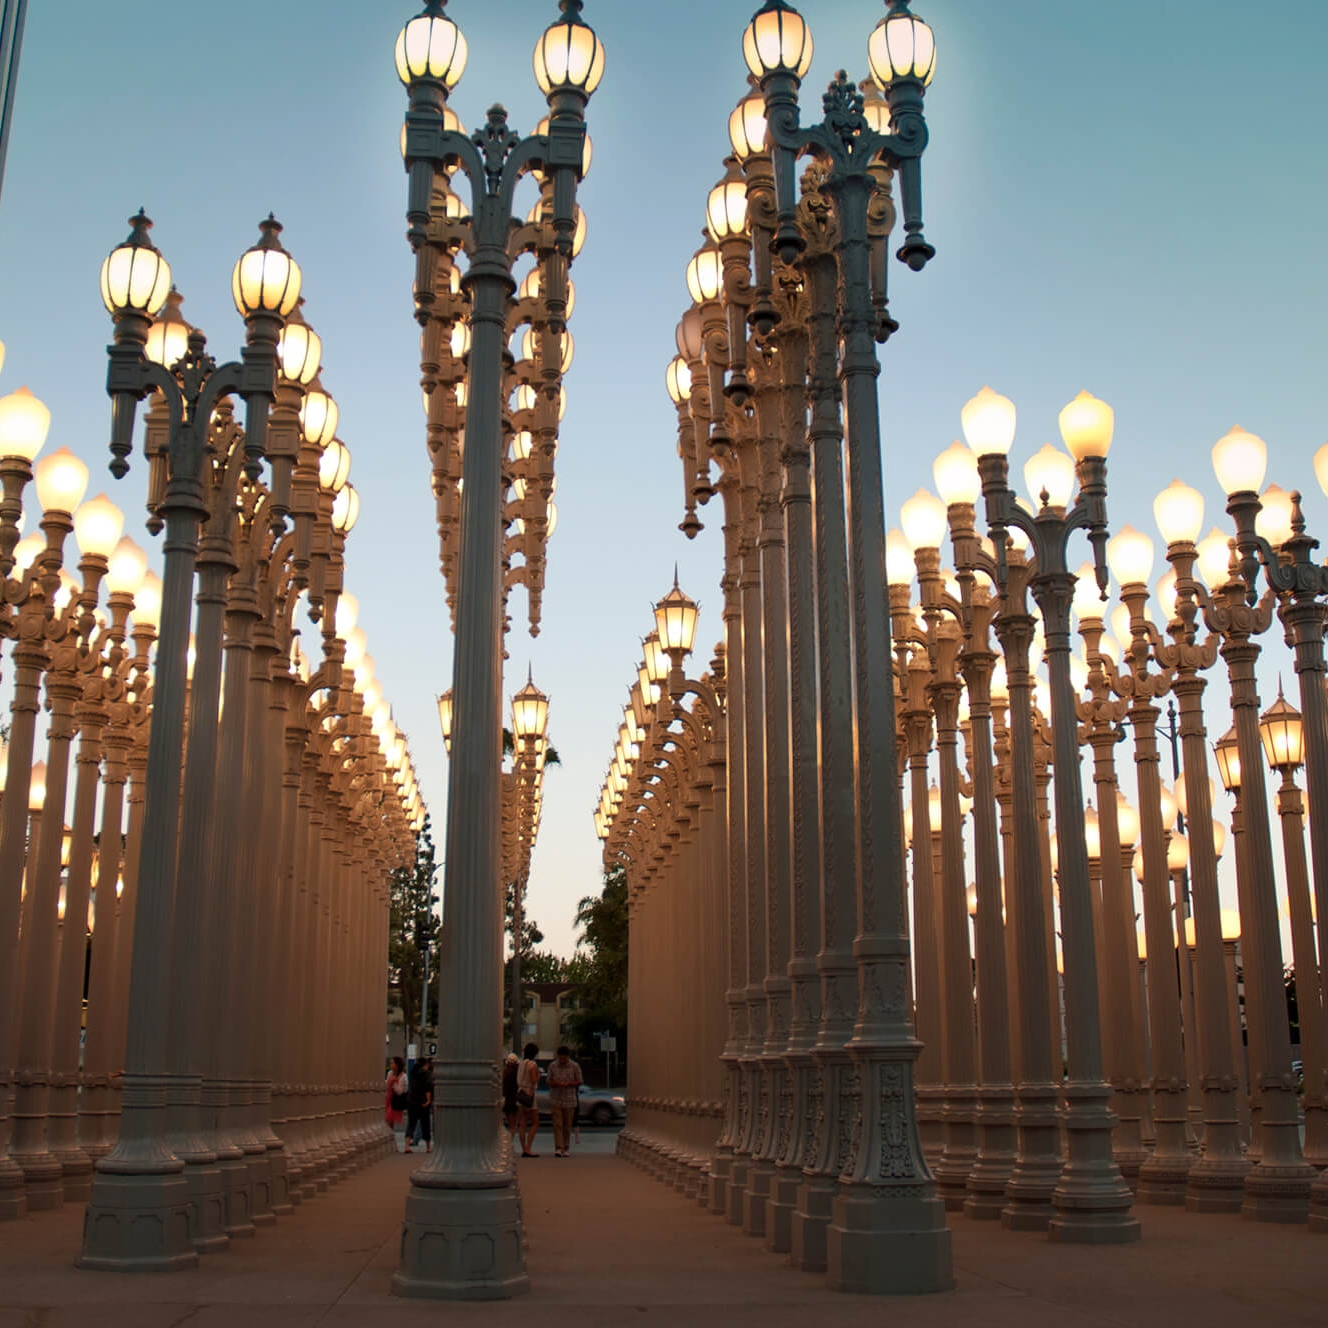 Urban Light Installation at the LACMA